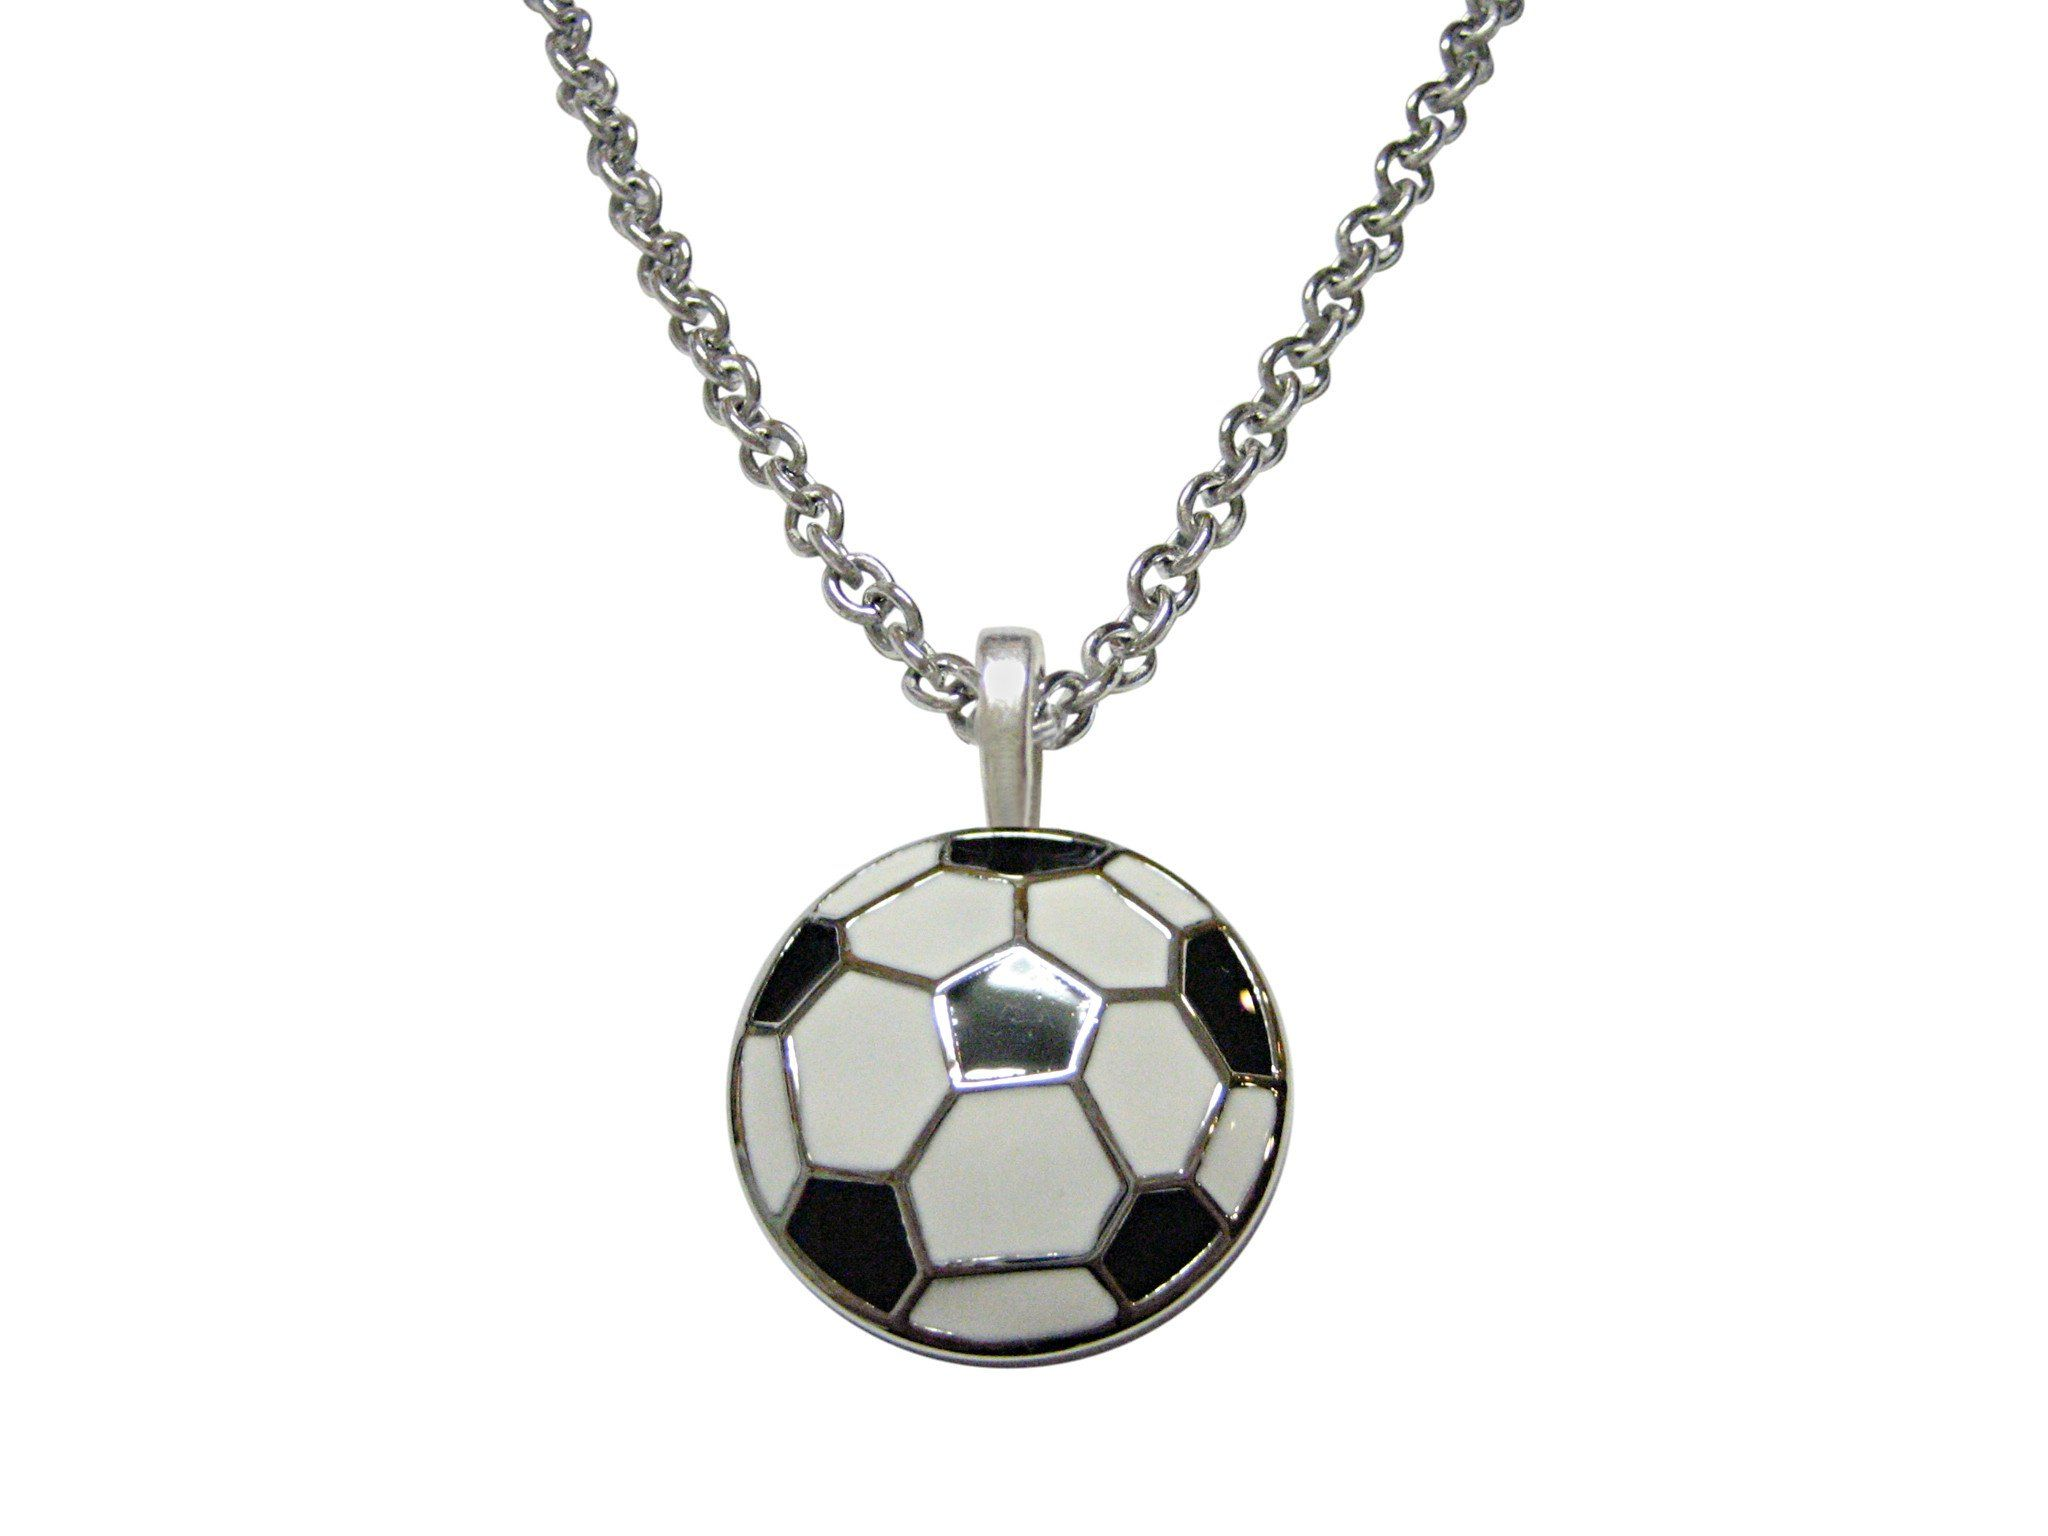 namefactory sports necklace necklaces number football pendant name plated gold